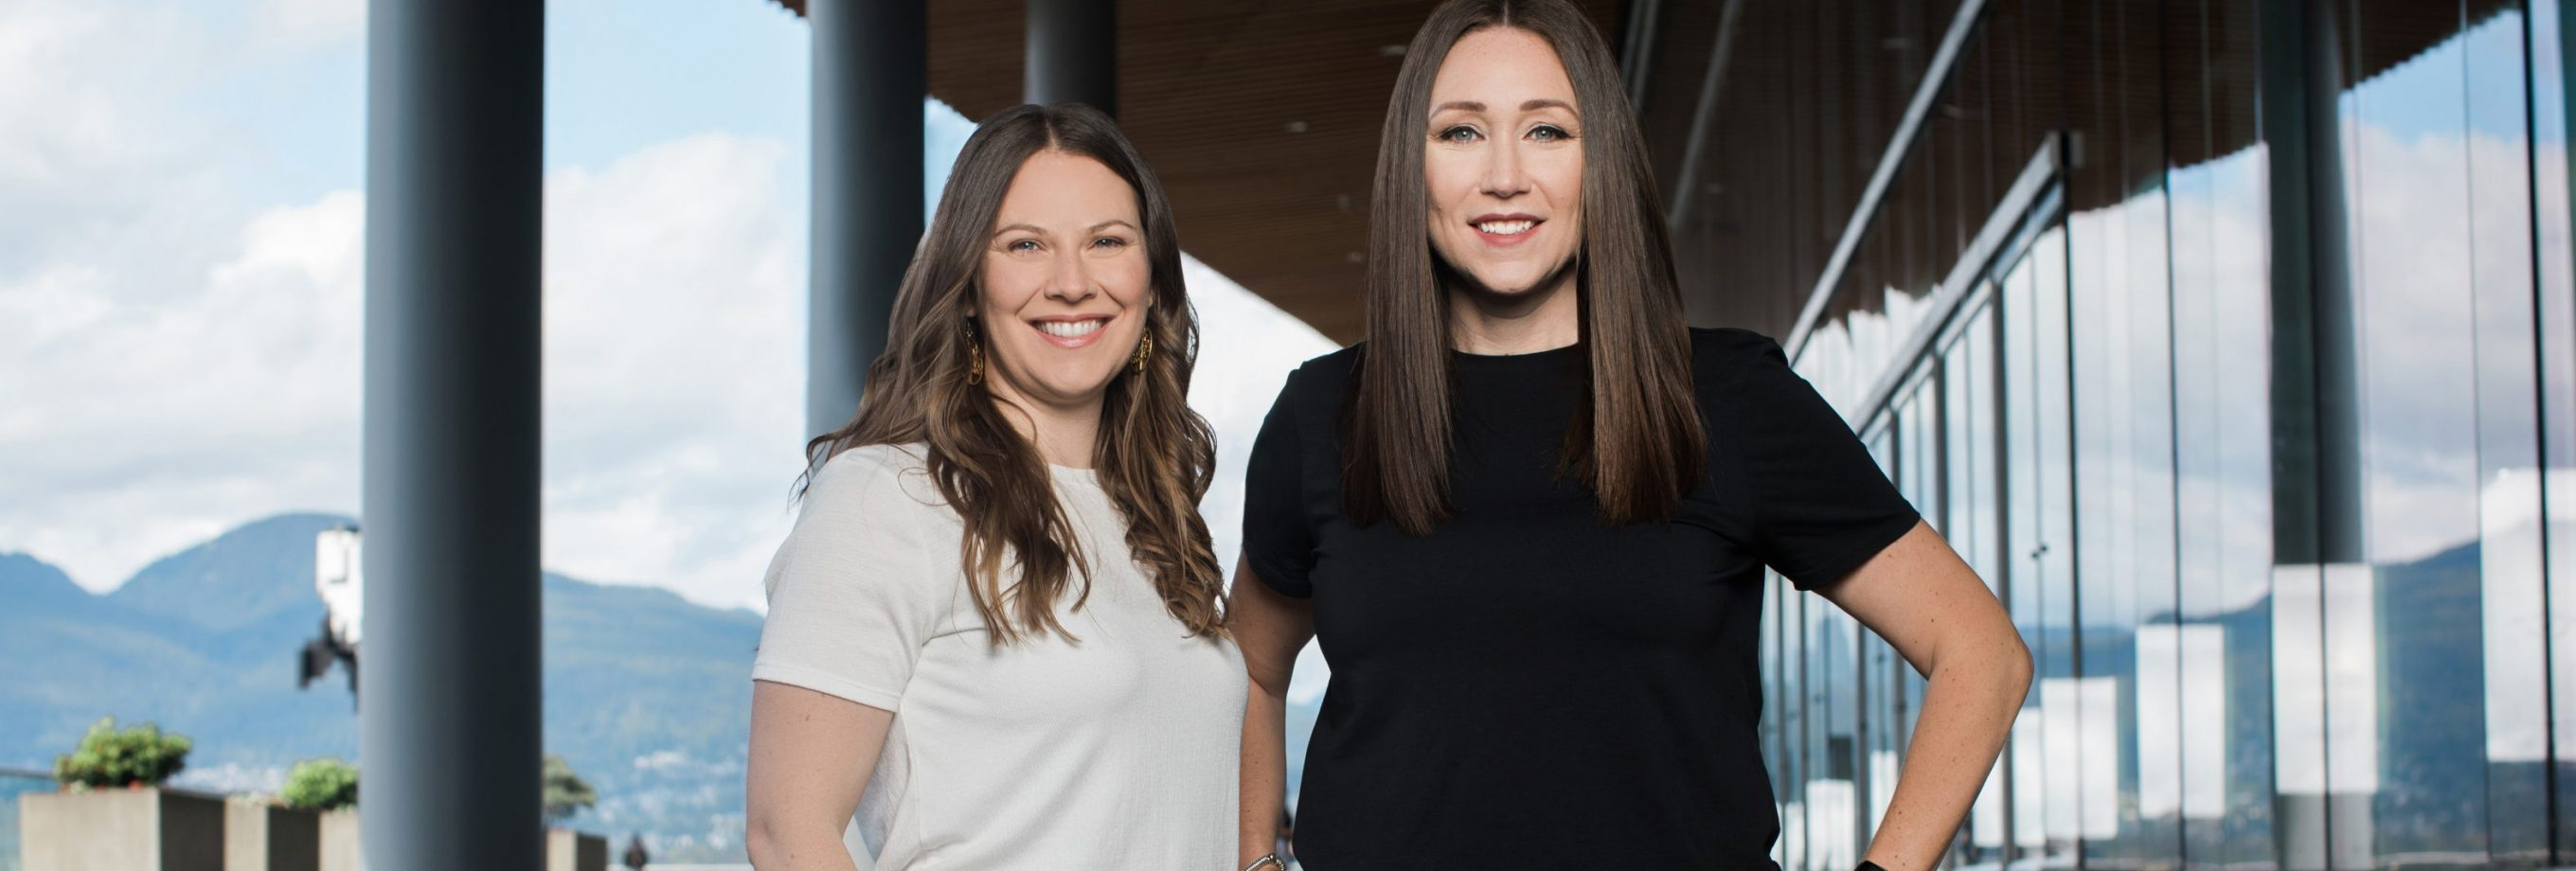 Vancouver's Top Recruiters - Genevieve and Margeaux